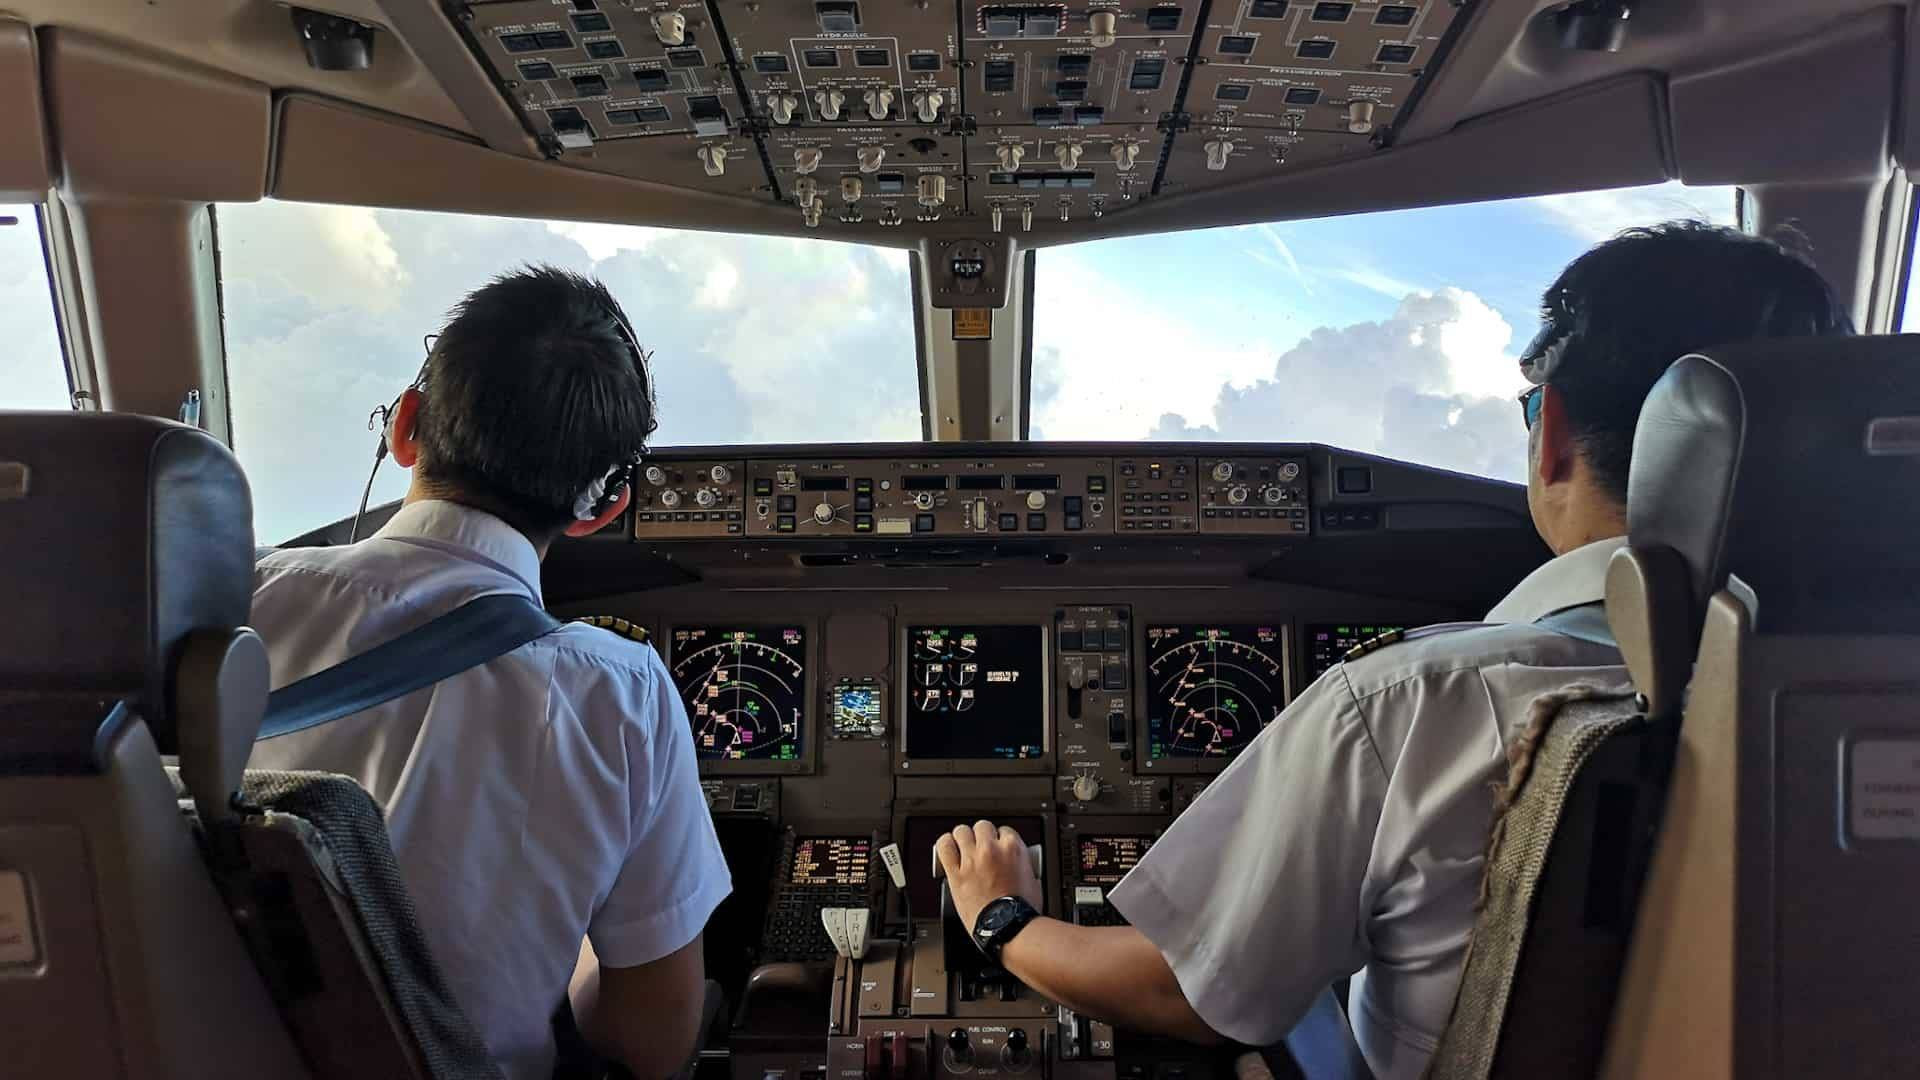 Top 19 Airplane Secrets Like Why Pilots Never Use Windshield Wipers!